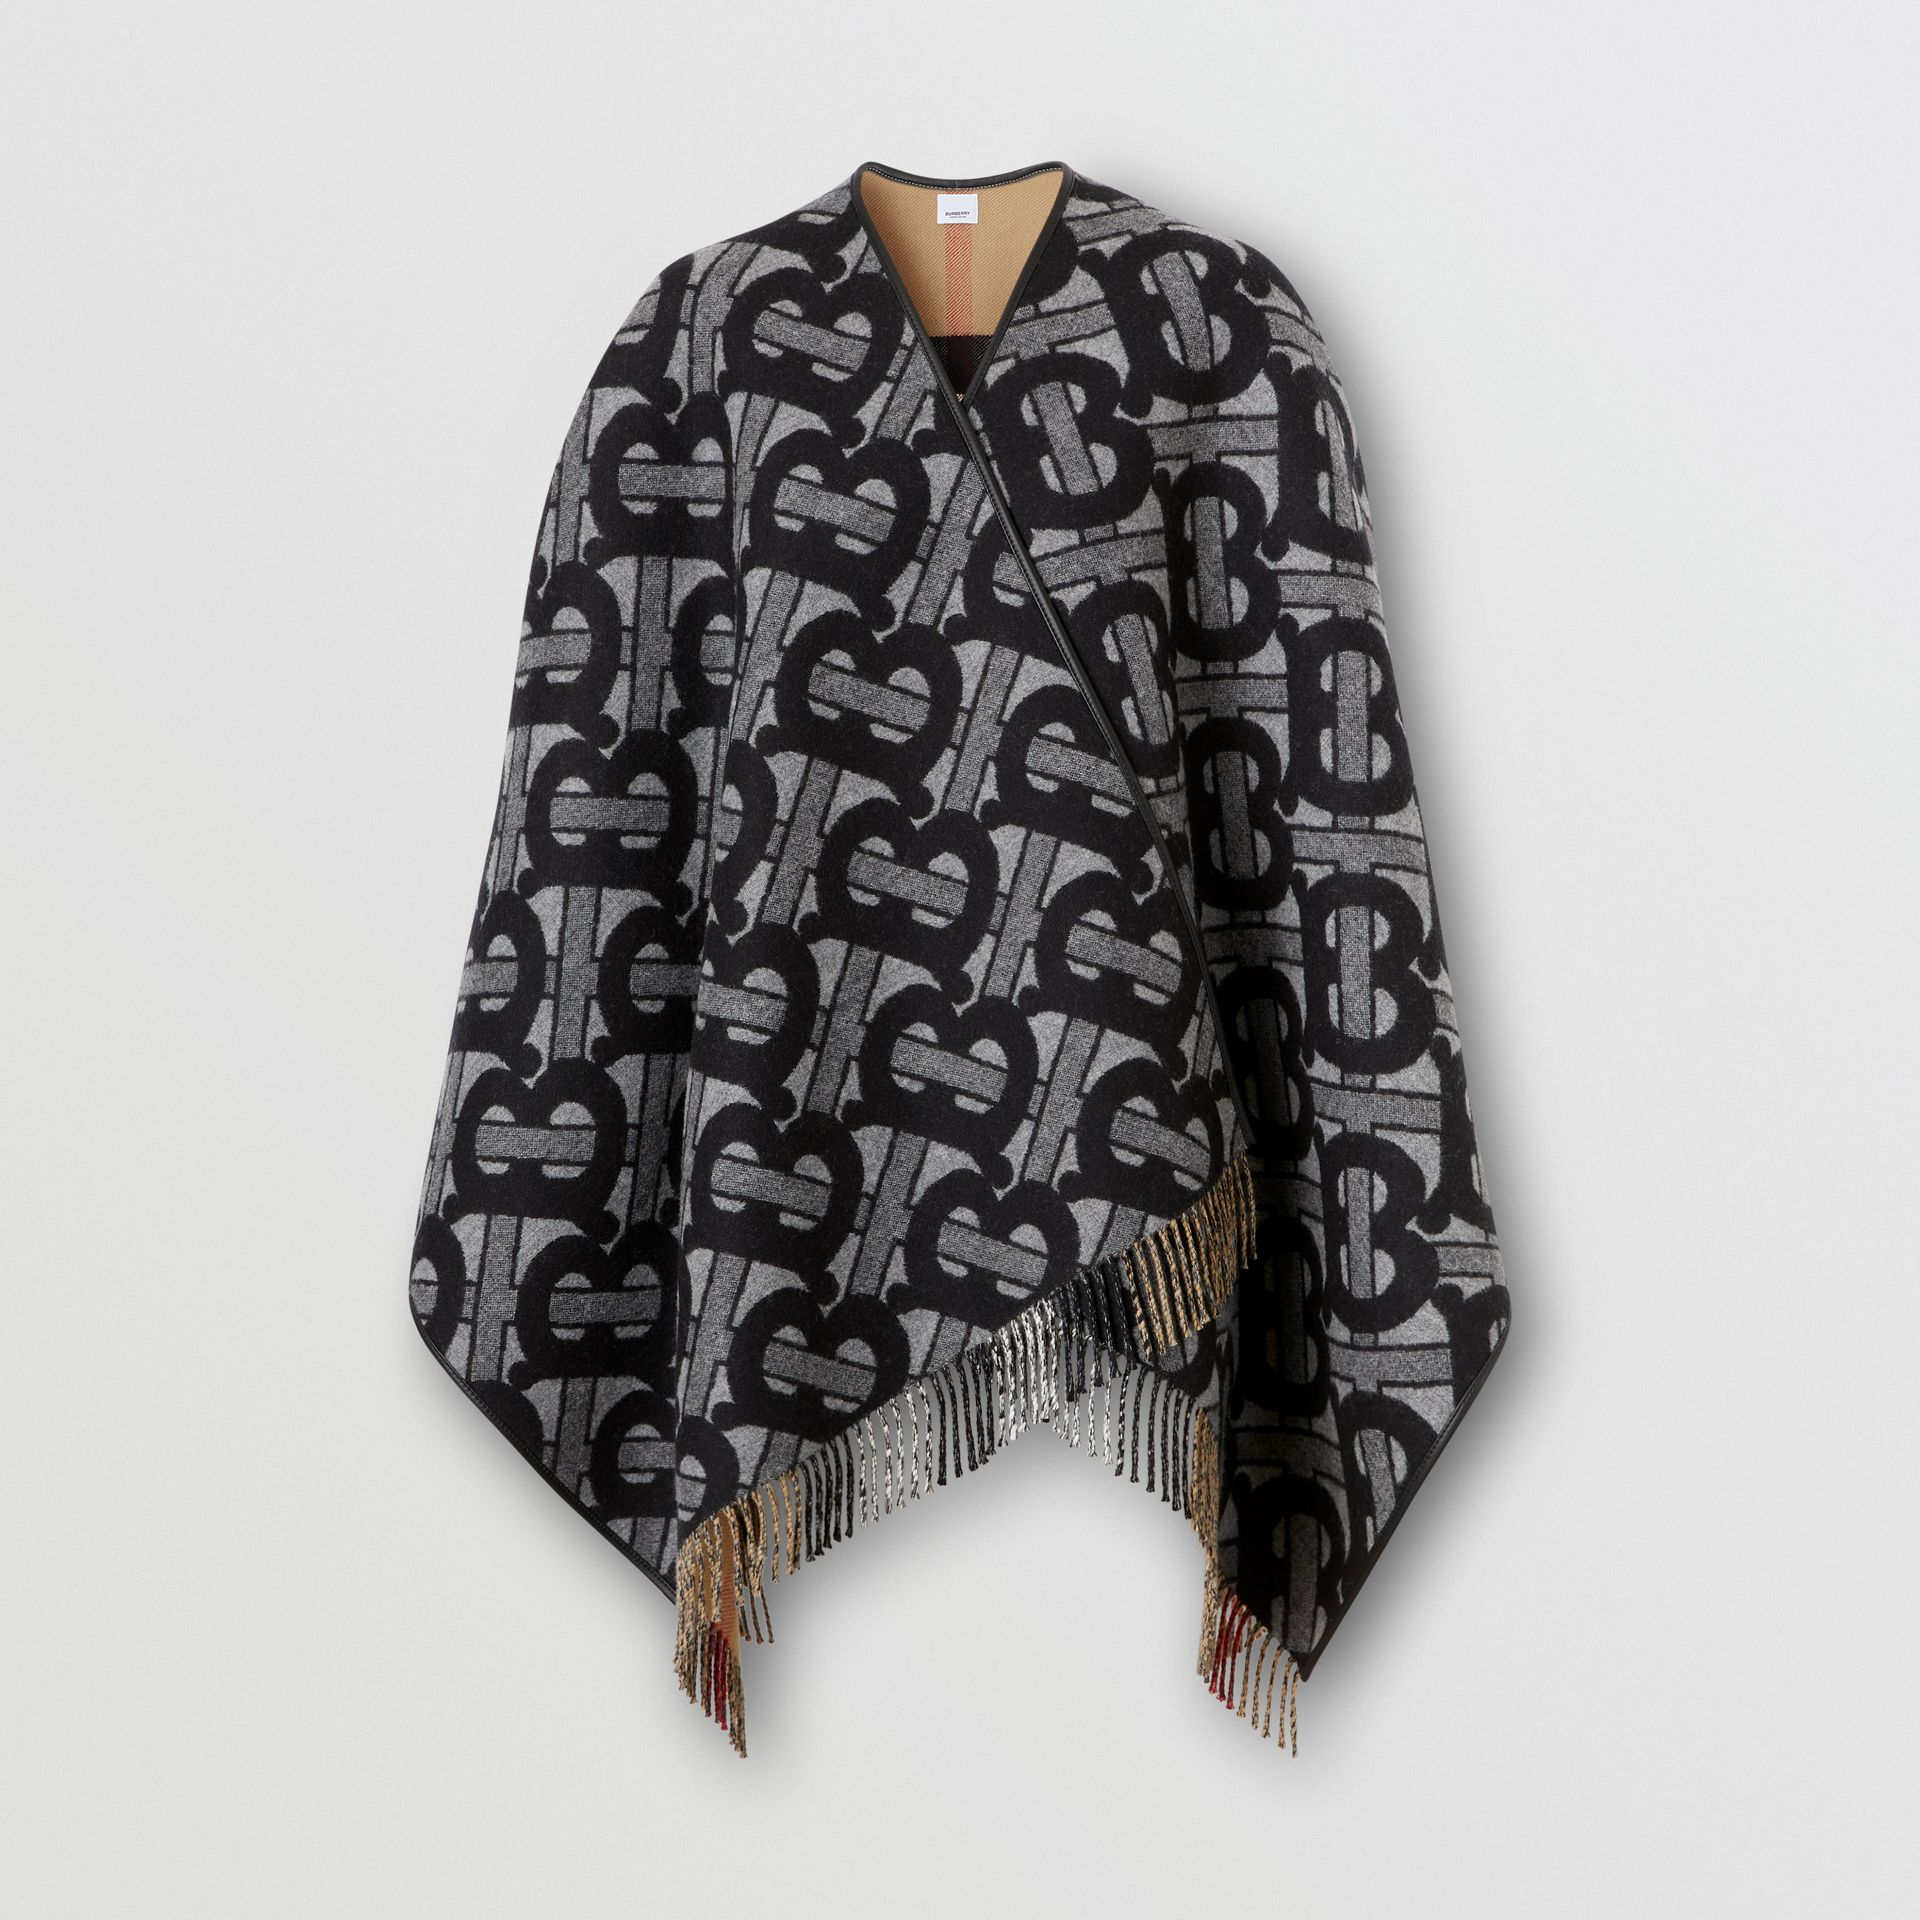 Monogram Merino Wool Cashmere Jacquard Cape in Graphite - Women | Burberry - gallery image 3